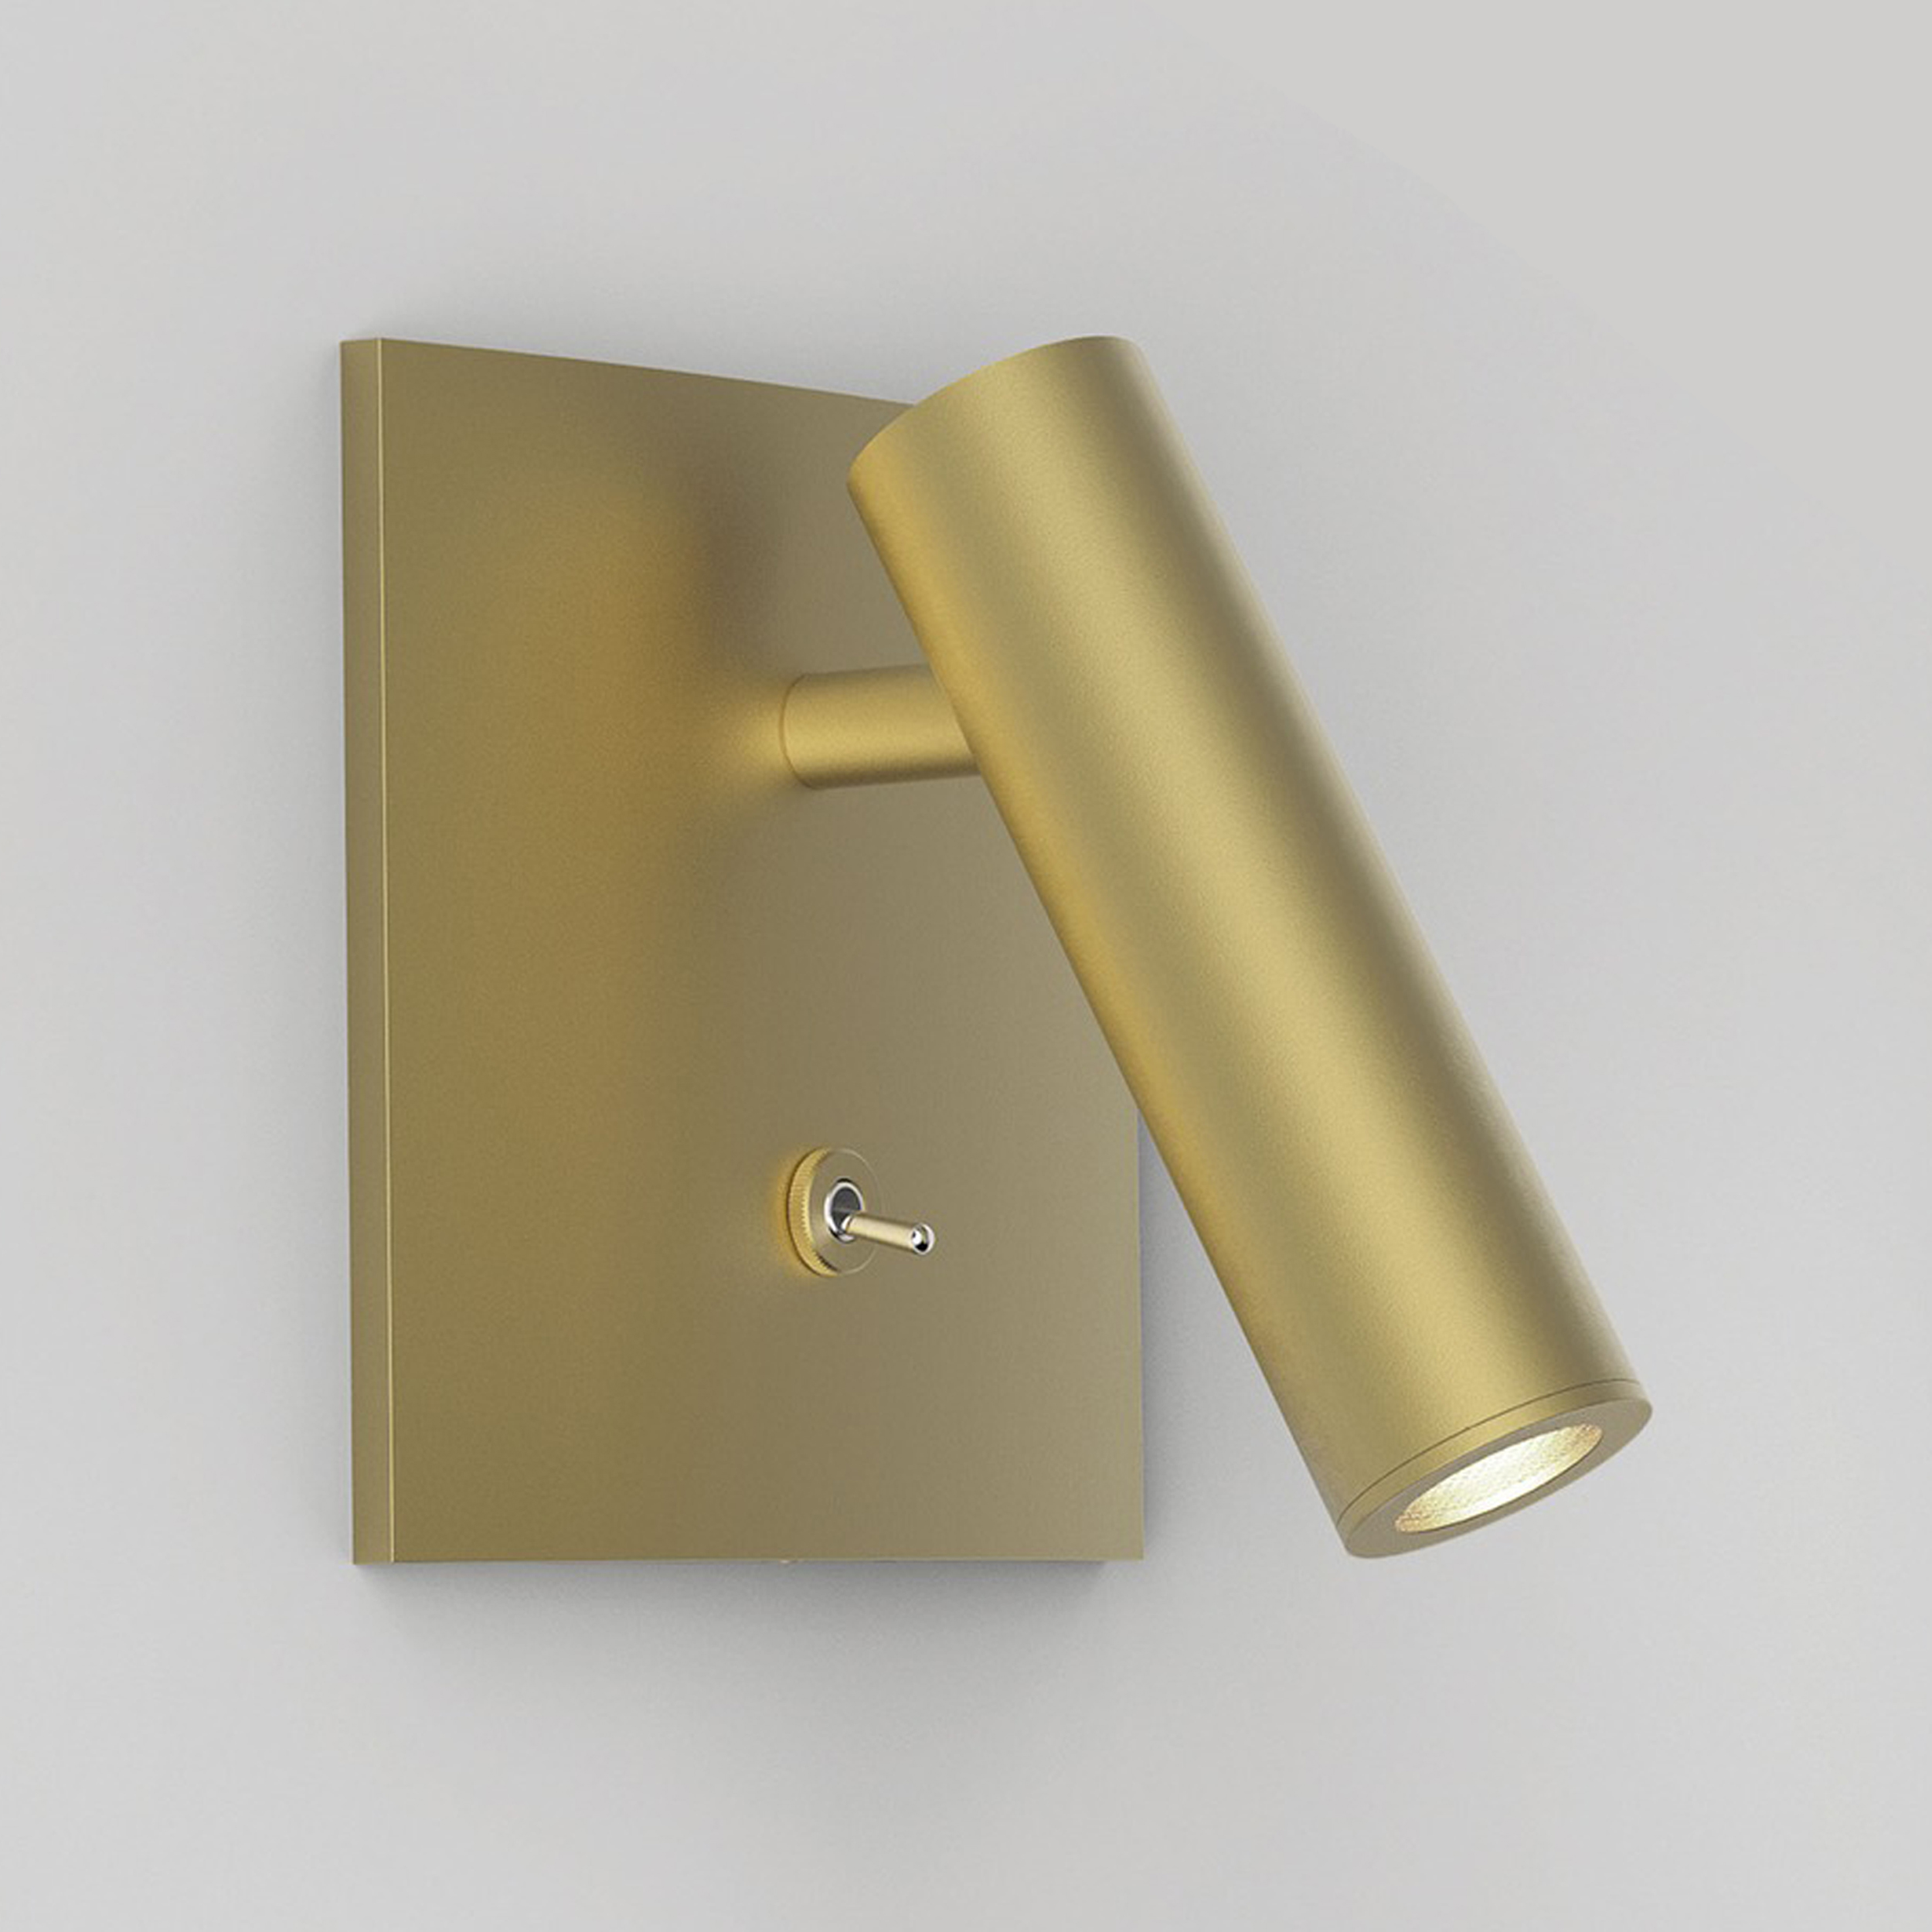 Astro Enna Square Led Wall Light Matt Gold